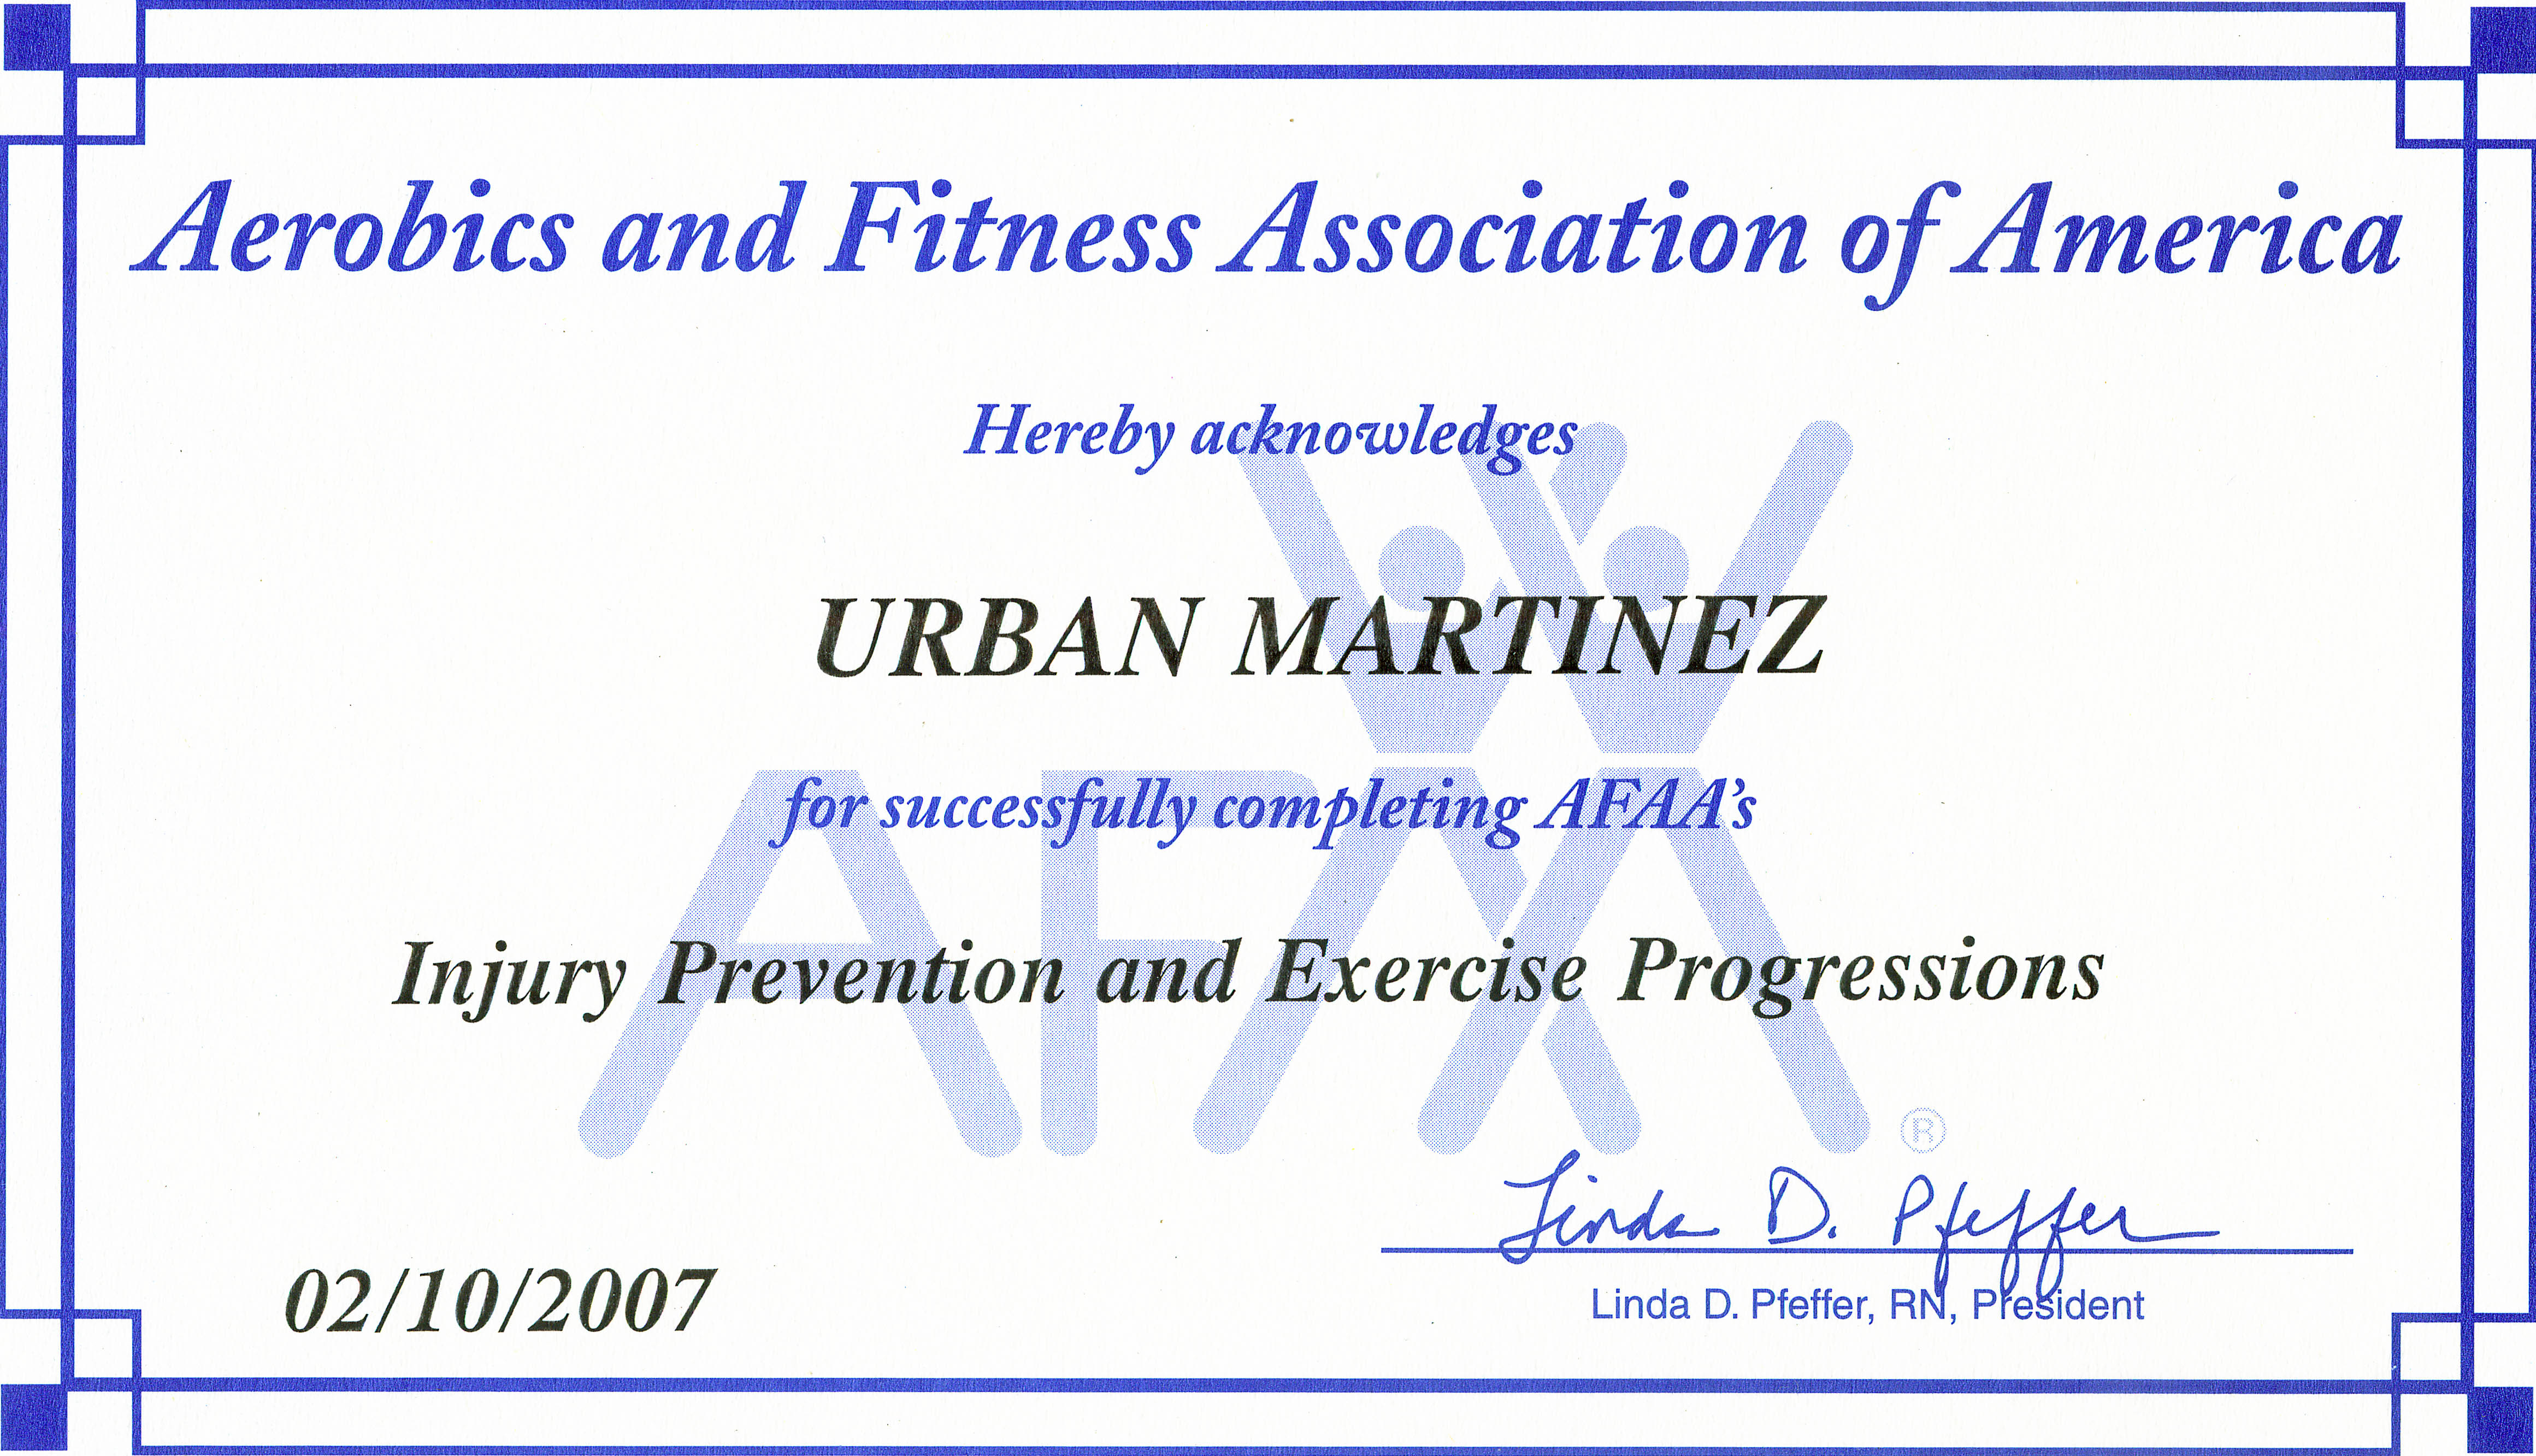 Injury Prevention and Excerise Progressions Certificate